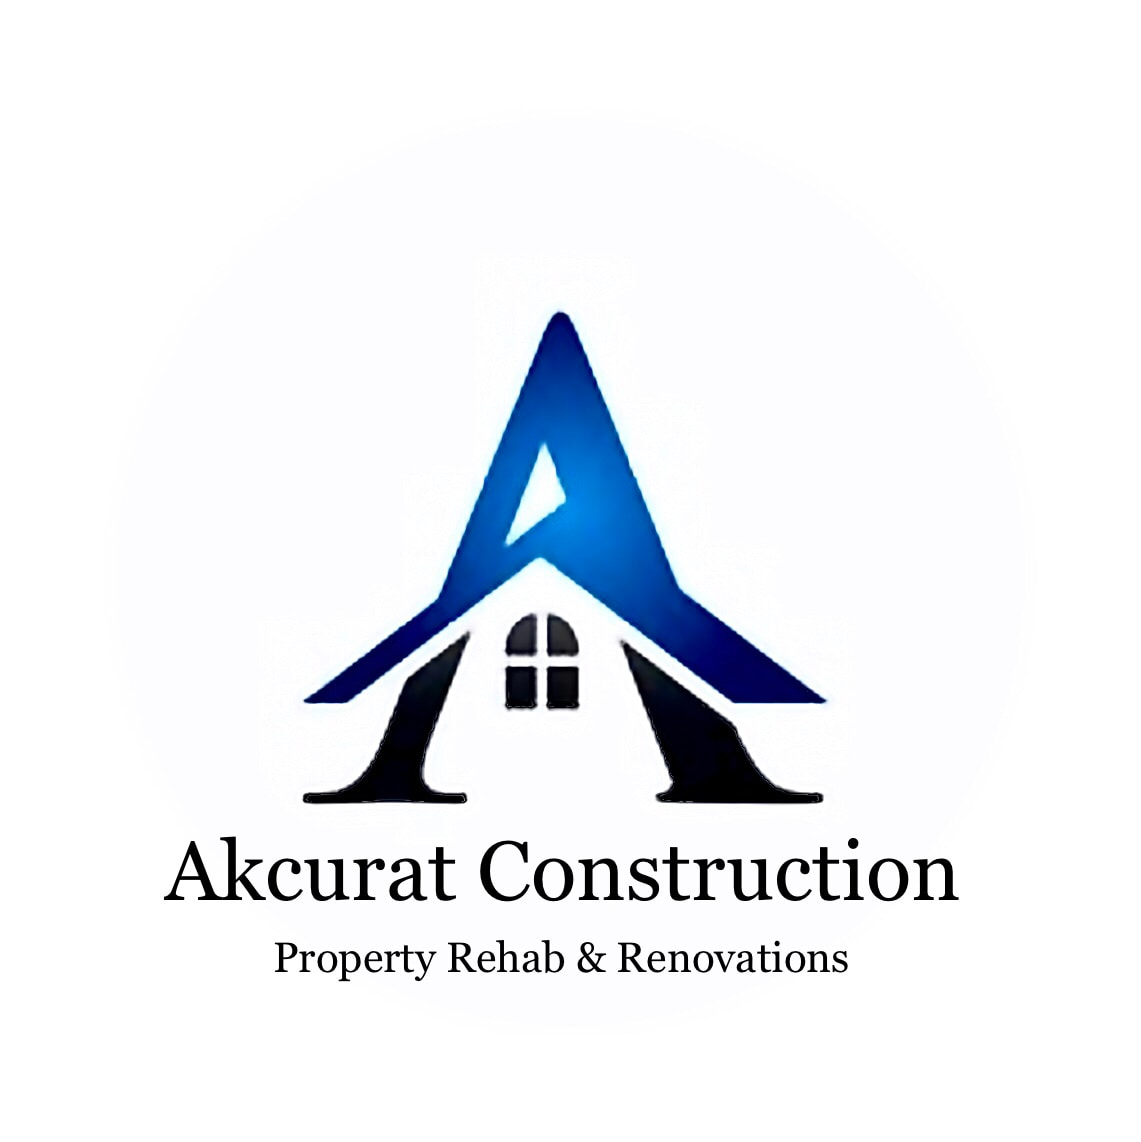 Akcurat Constuction